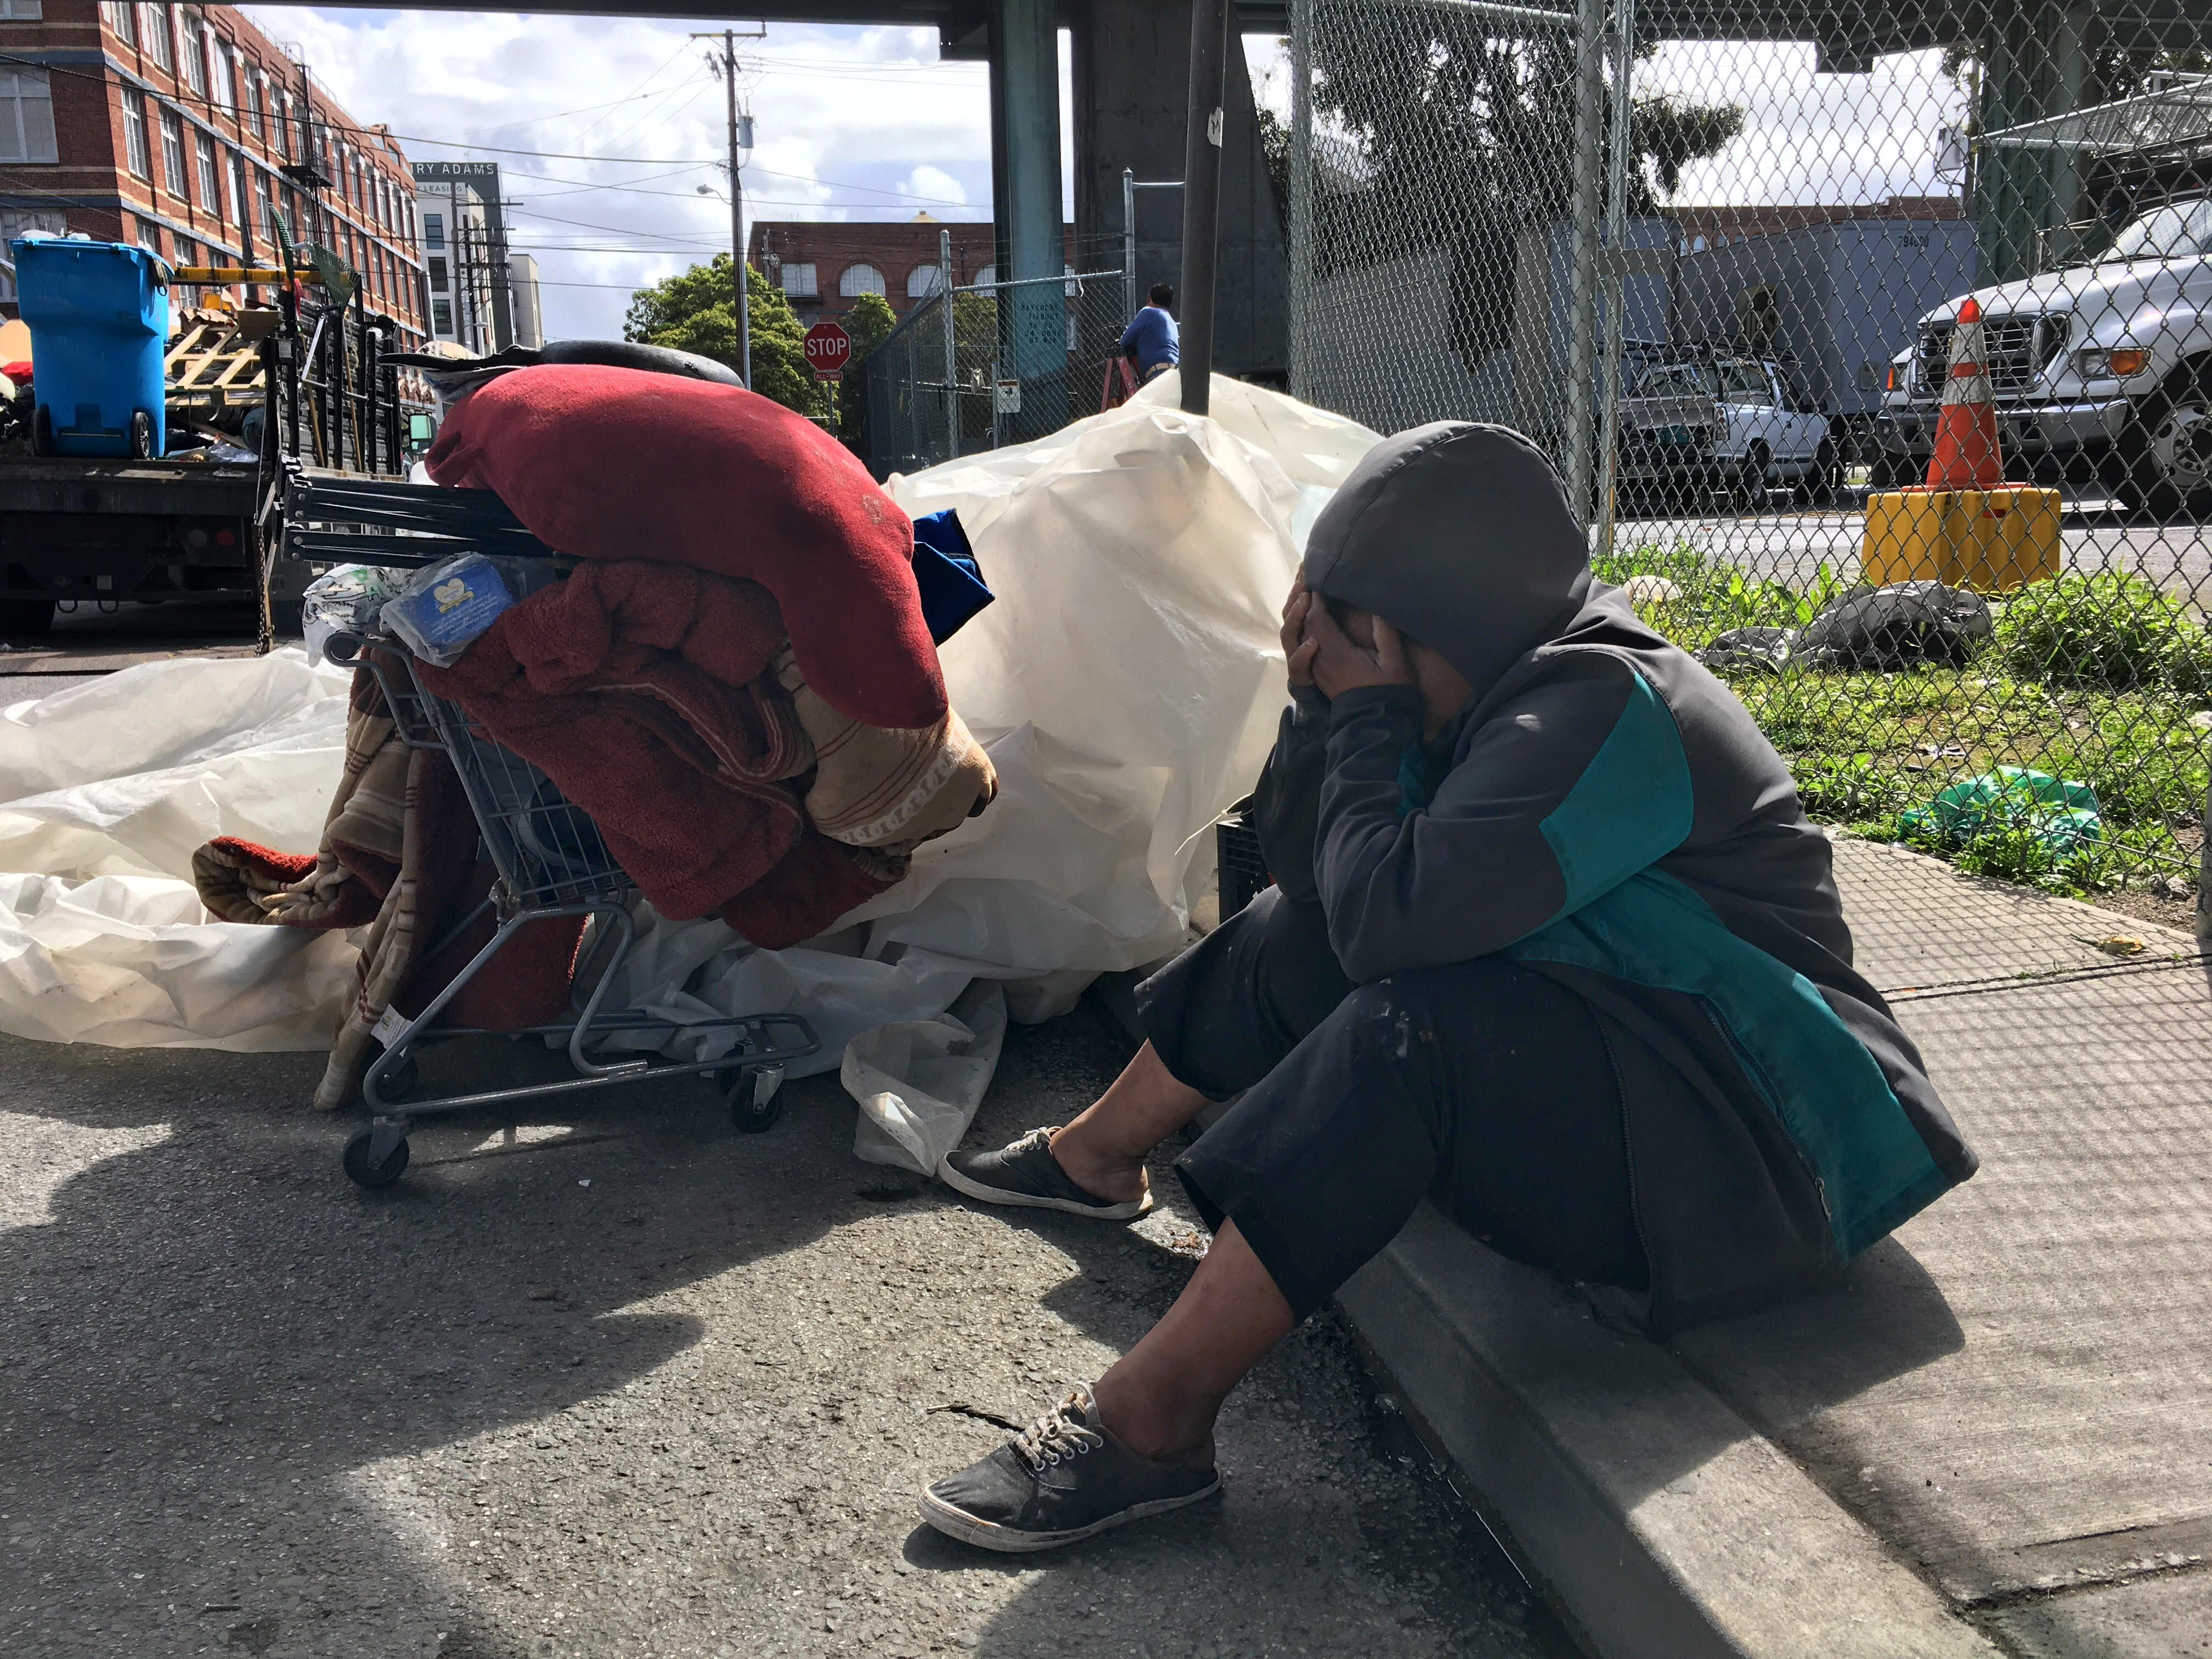 City confounds some of its workers as it sweeps an encampment early